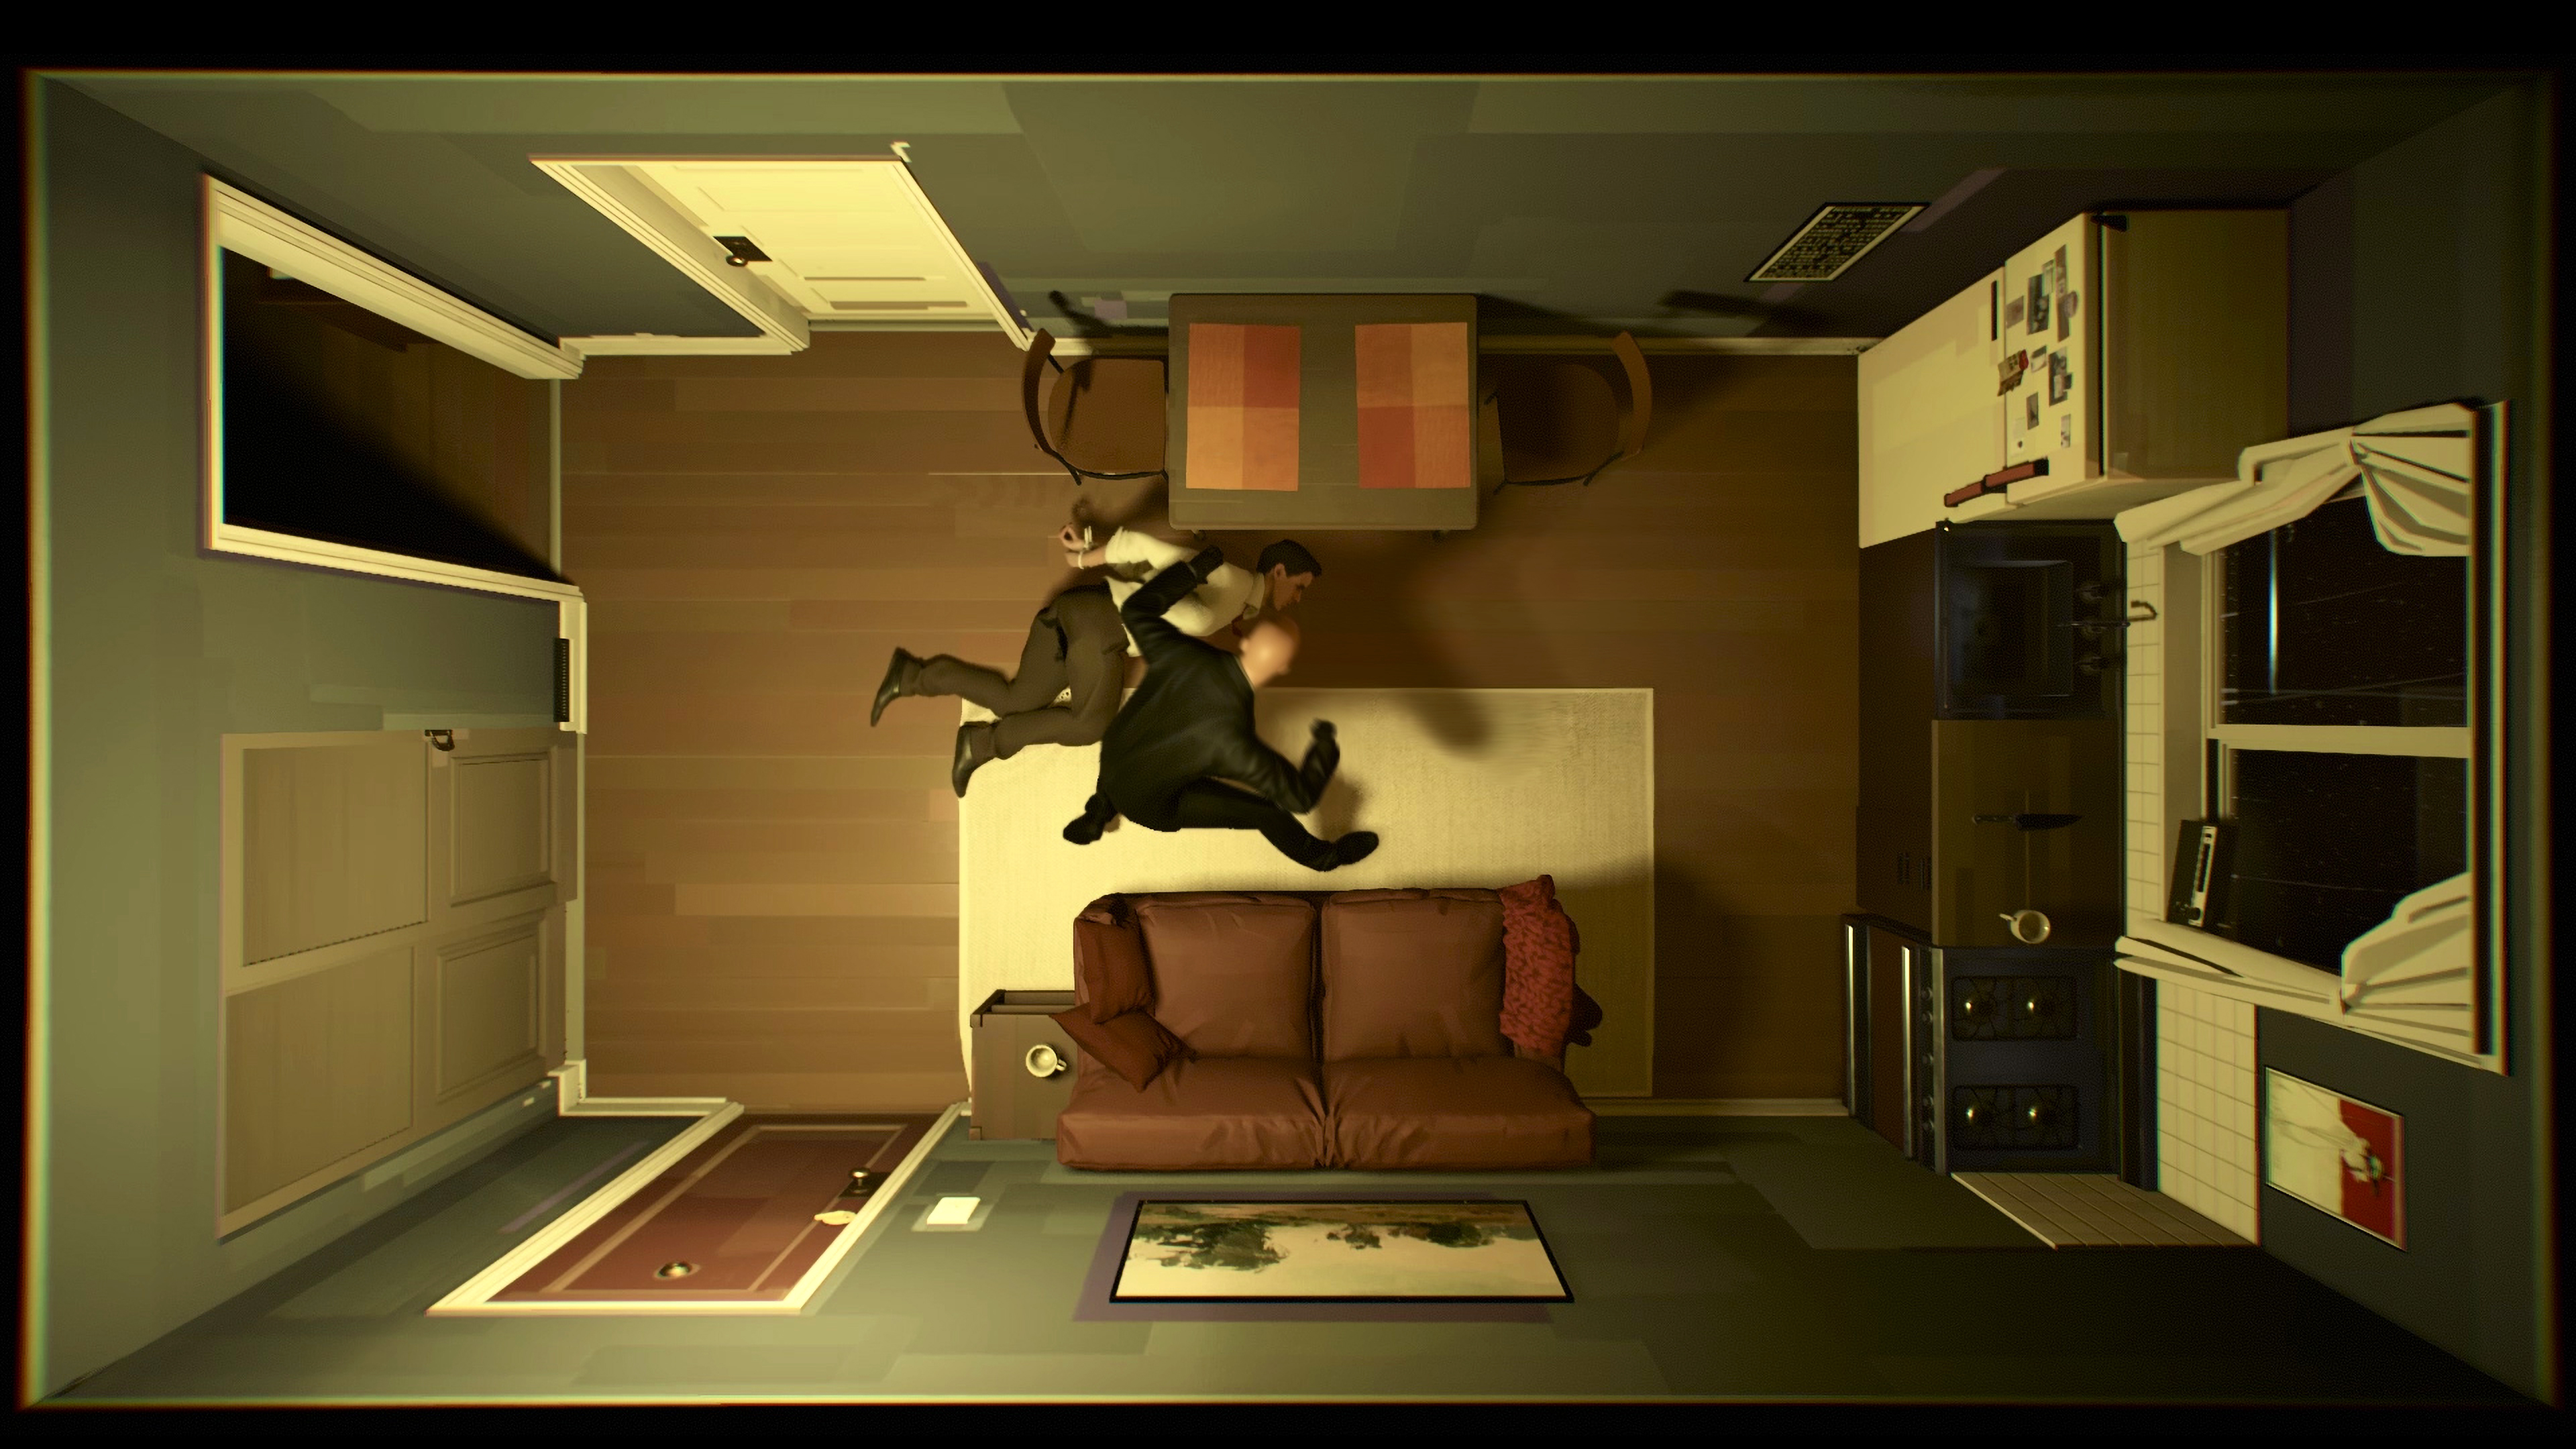 an overhead shot from Twelve Minutes of a man lying handcuffed on the floor of his apartment while a man clad in black beats him up